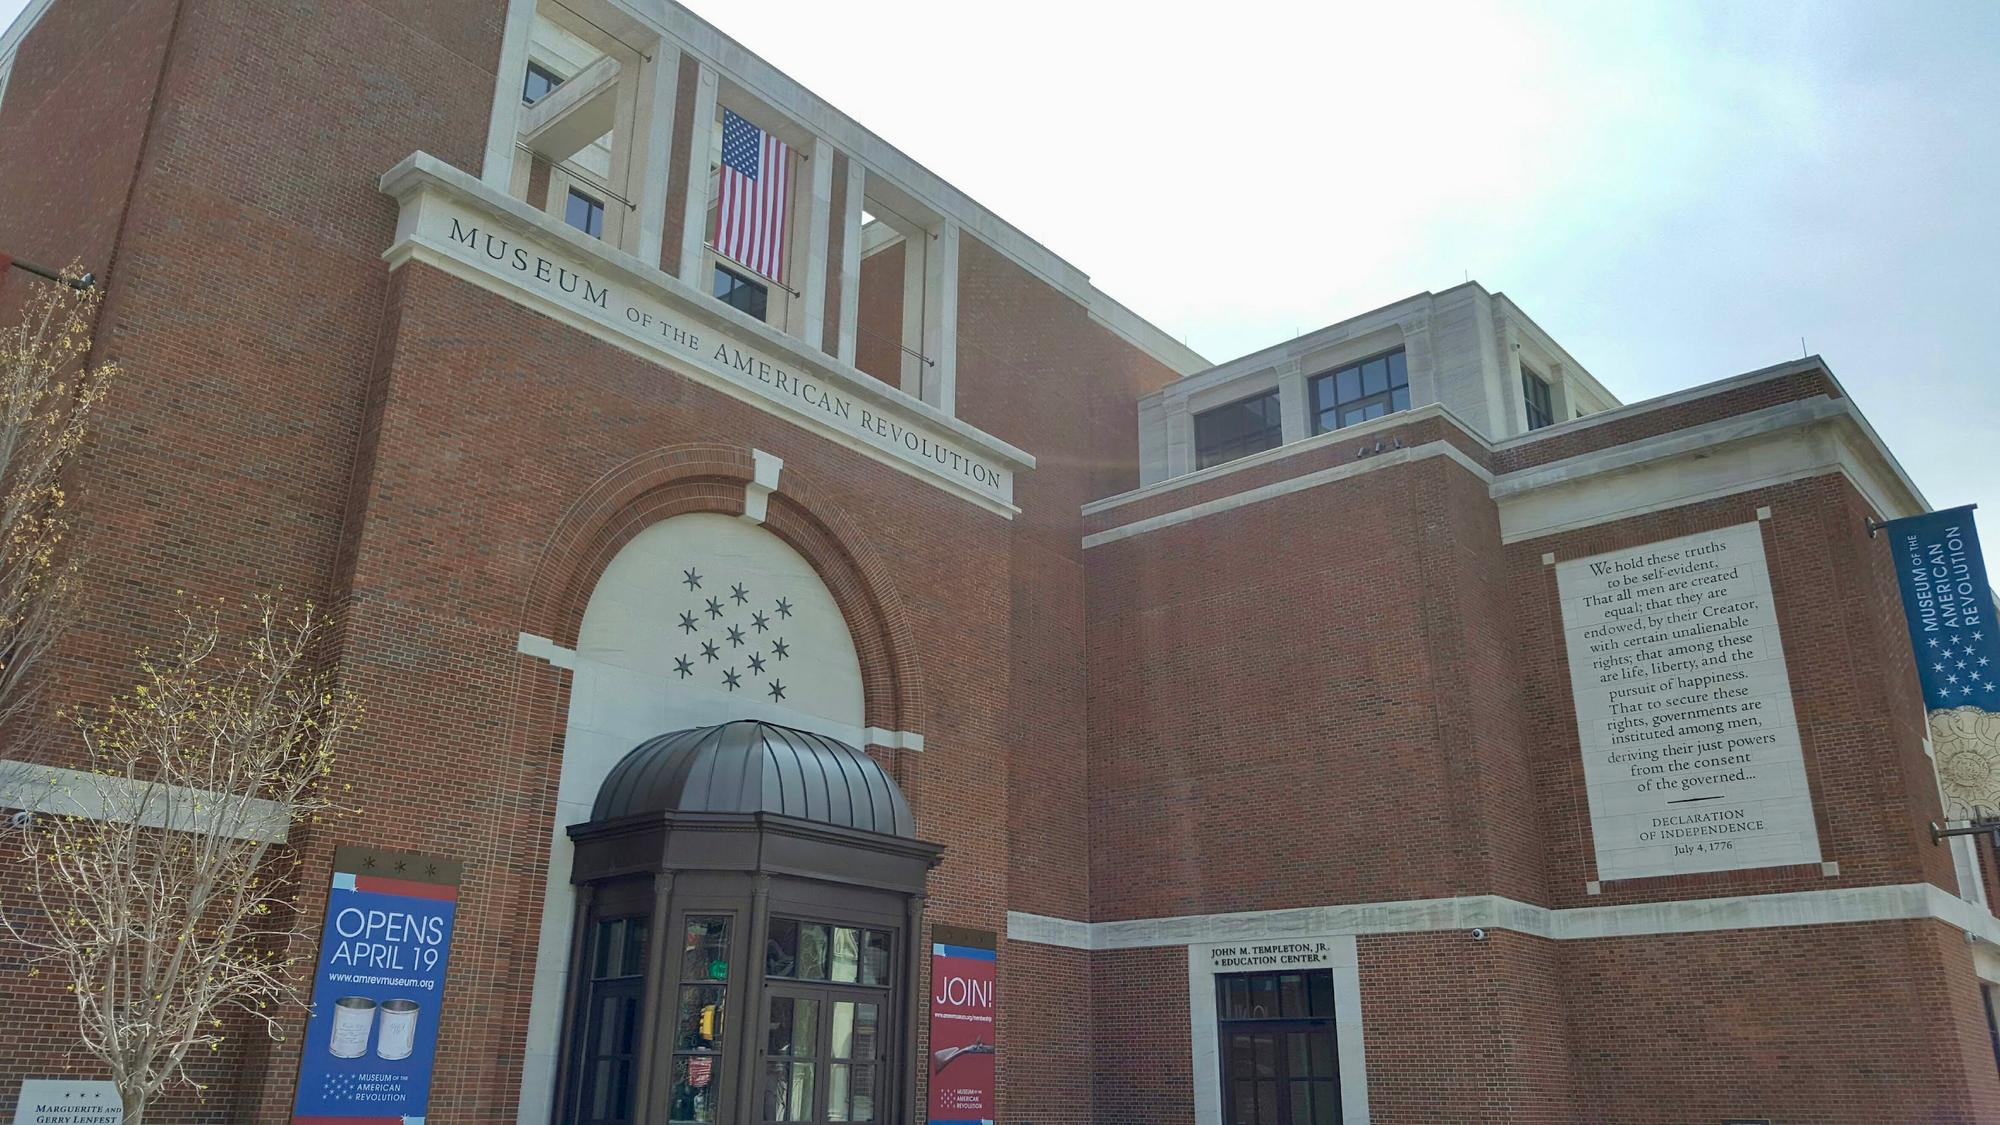 Exterior of the Museum of the American Revolution